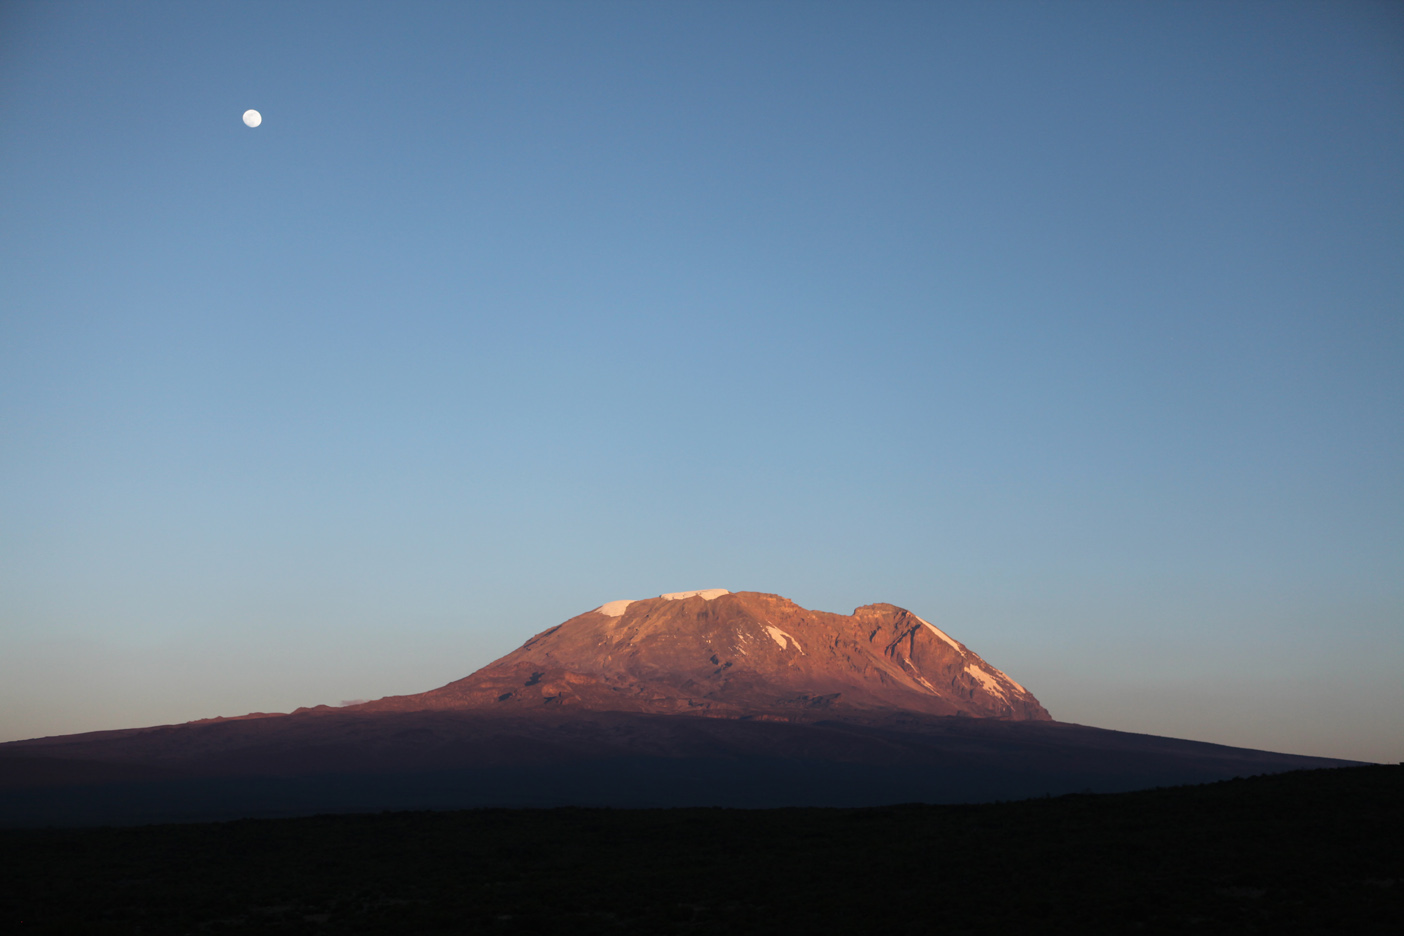 Mt. Kilimanjaro and an almost full moon at sunset from Camp 2 - Shira 1 Camp.